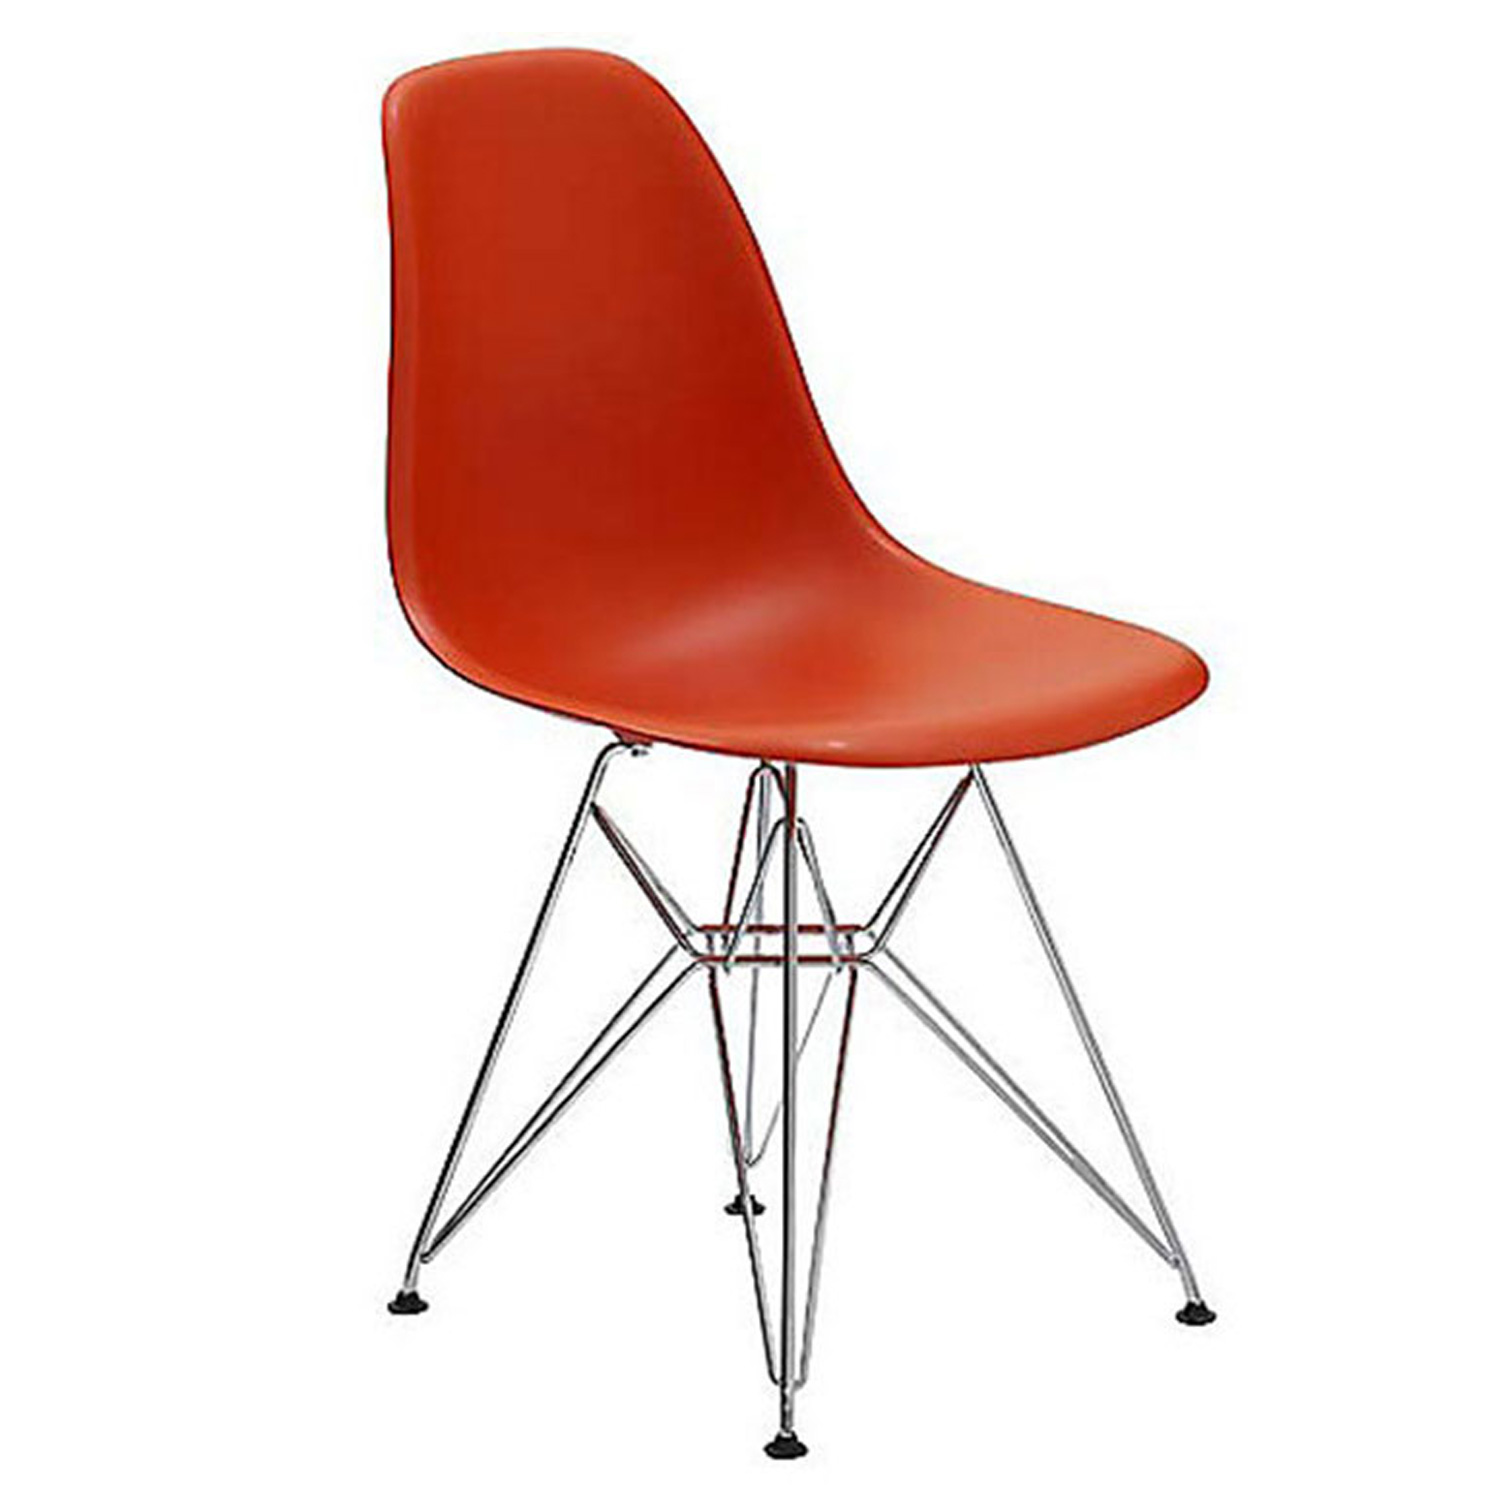 Replica eames eiffel kids chair clever little monkey for Eames replica